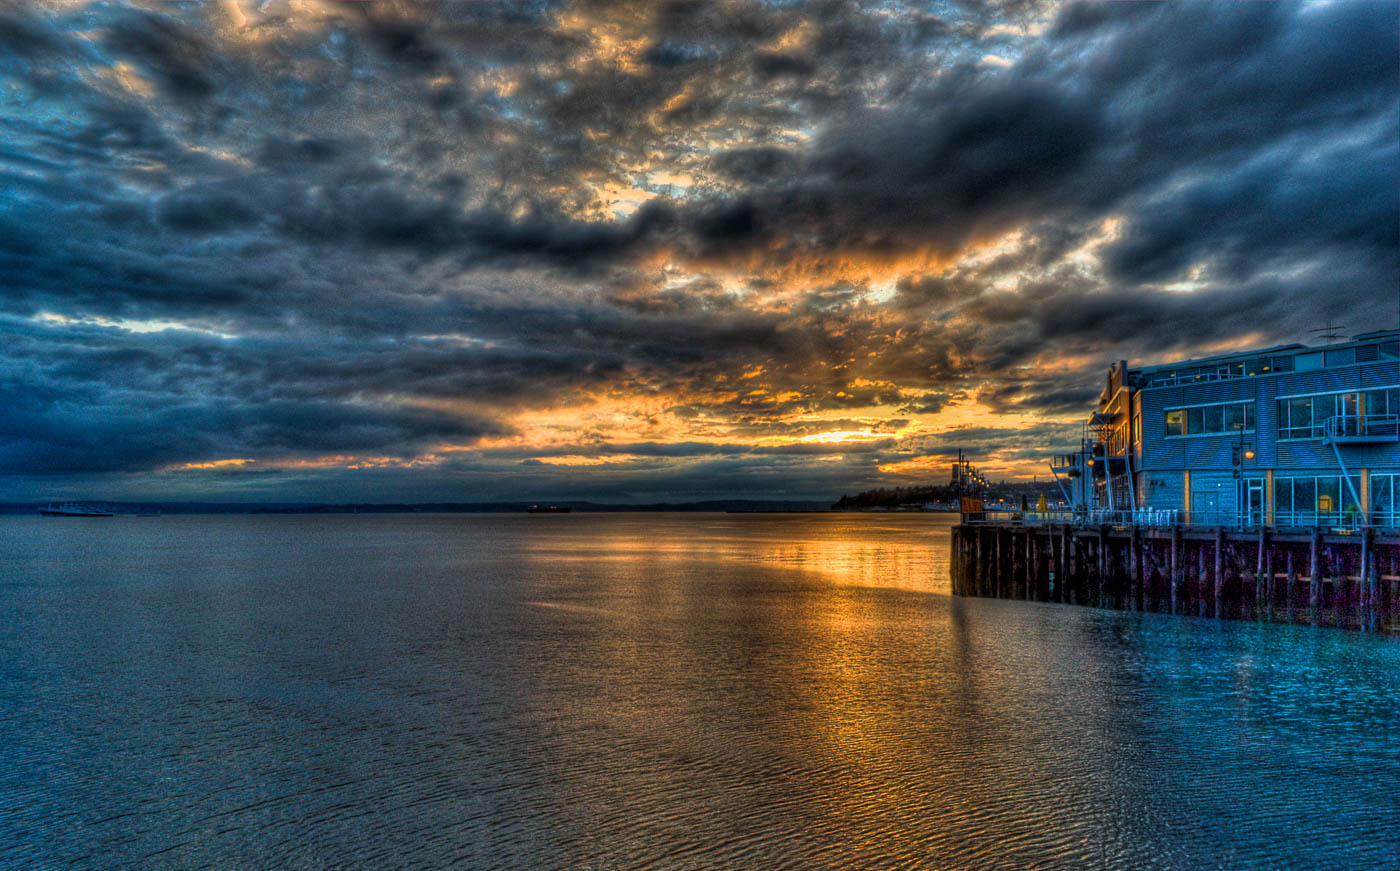 Sunset clouds at the Port of Seattle, Puget Sound, Seattle. Cop